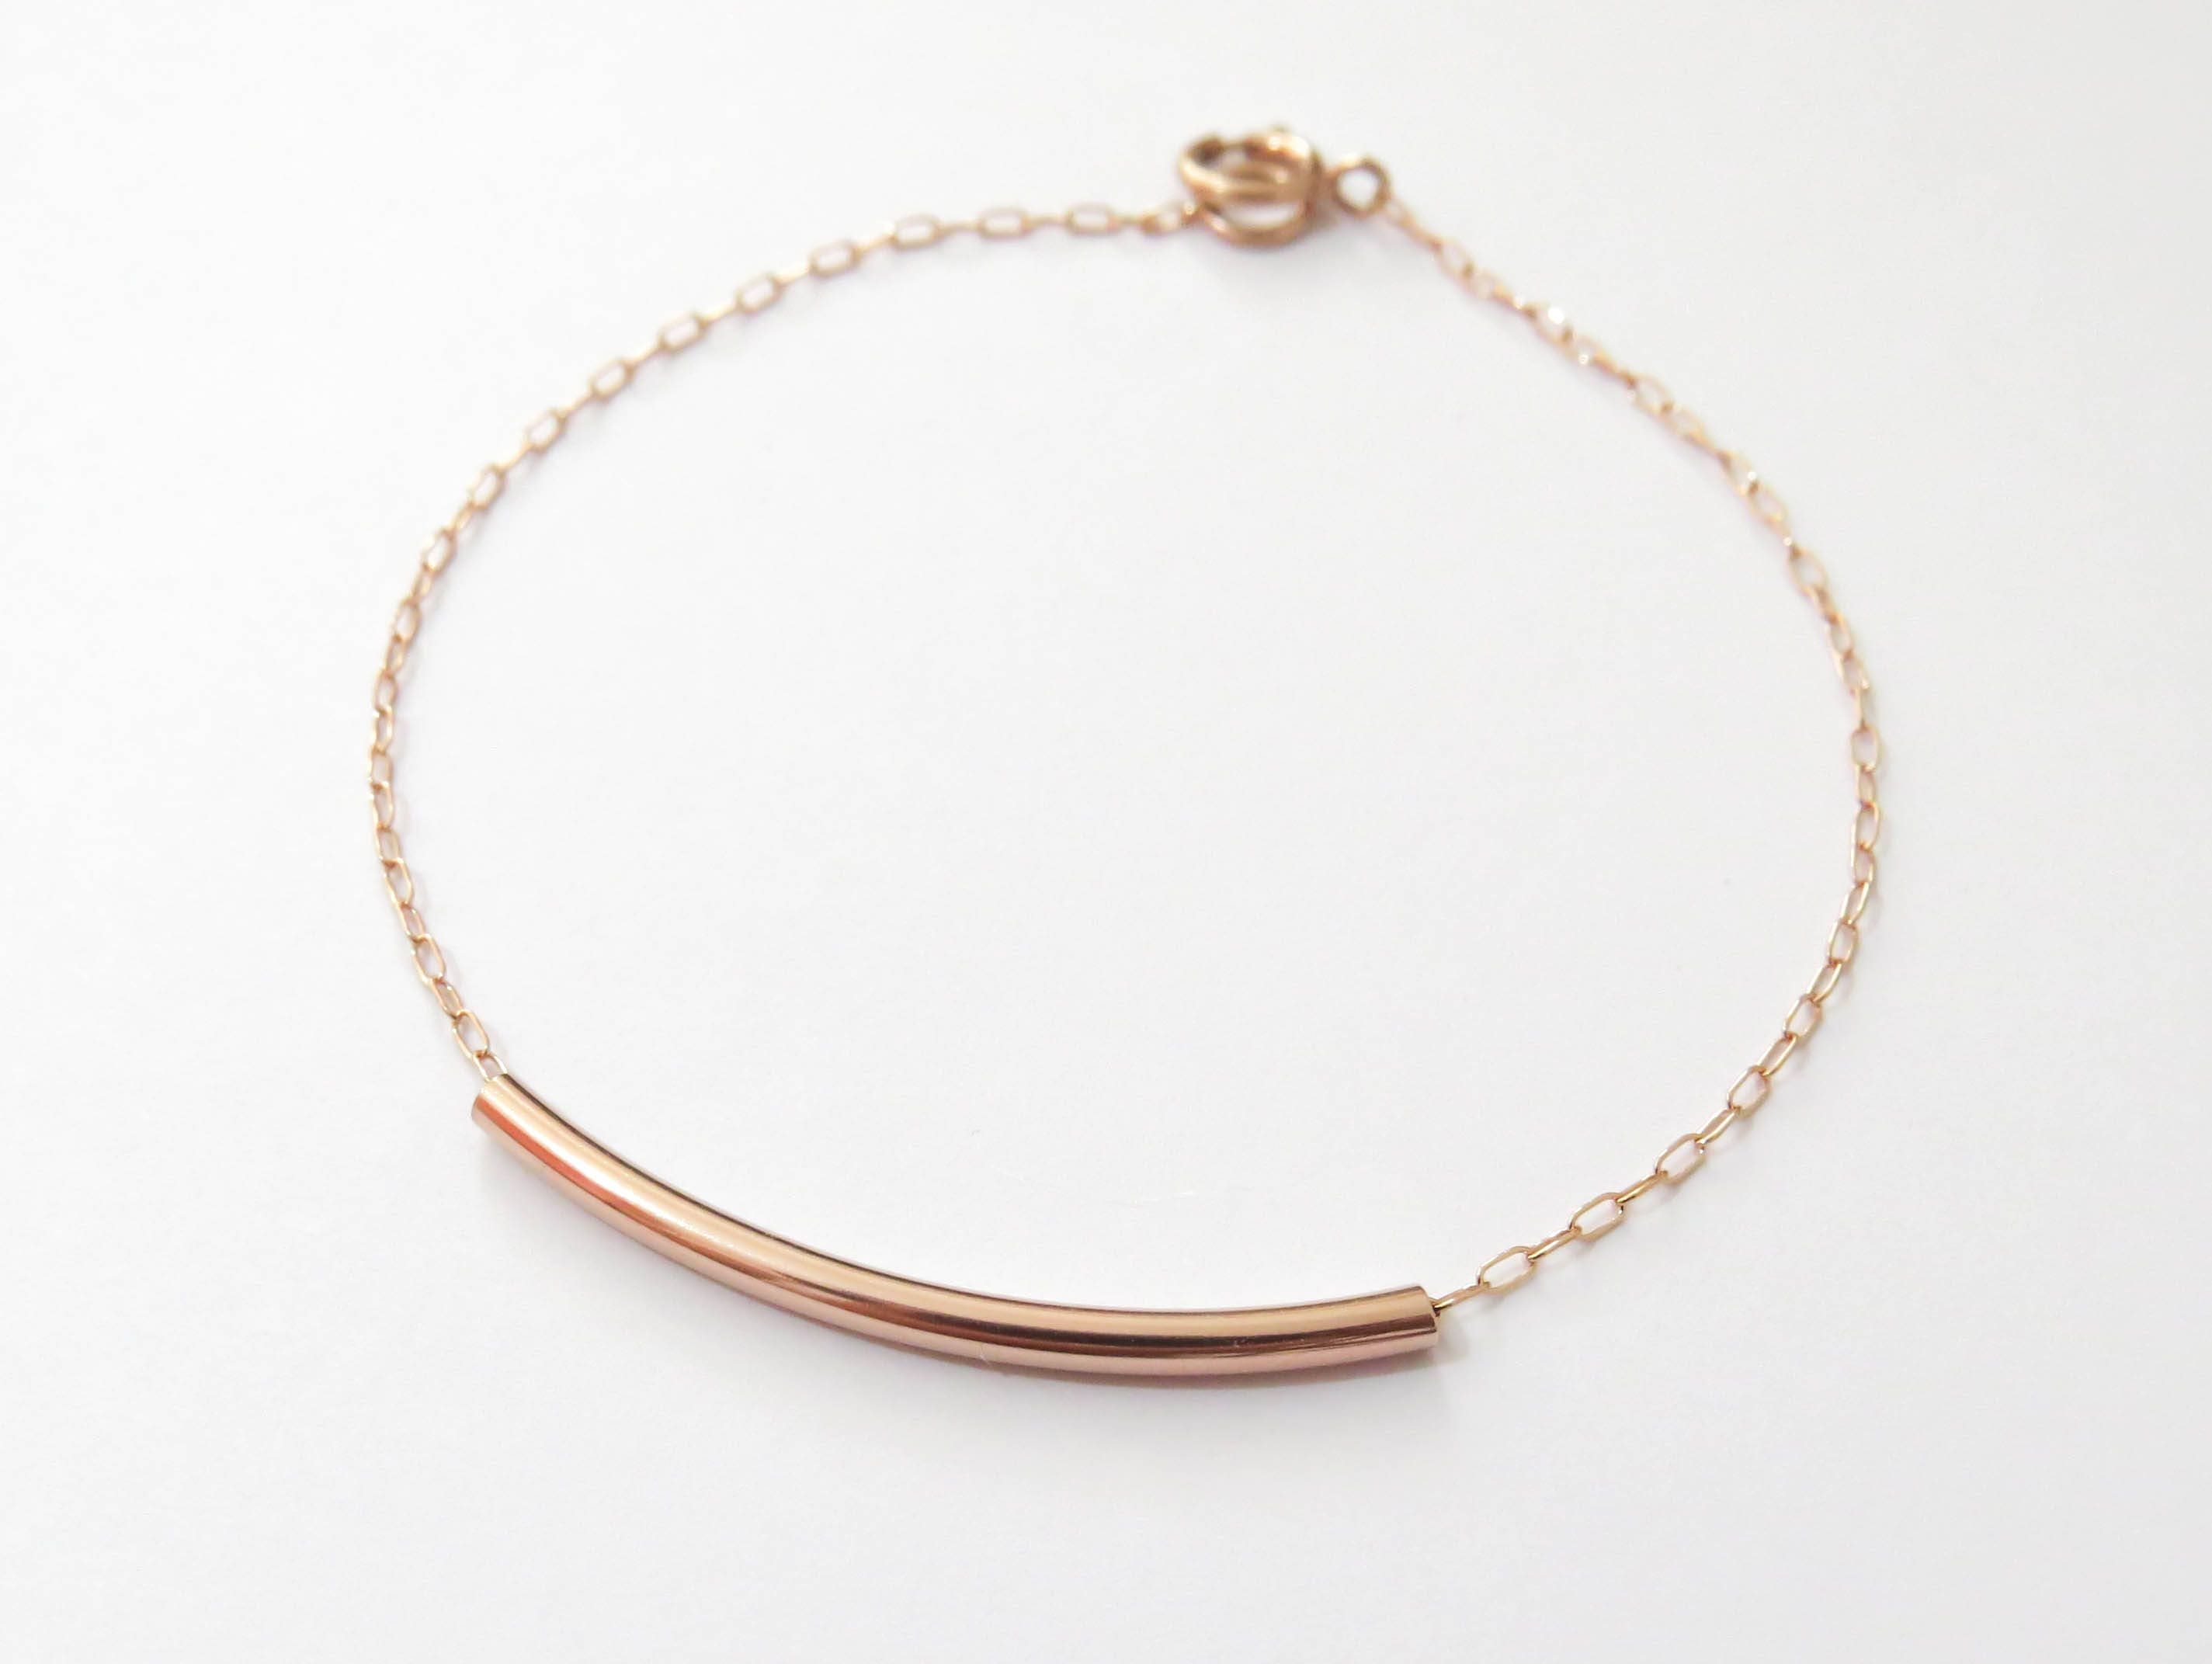 fullxfull filled bar gold p thin dainty jewelry delicate bracelet il duhq